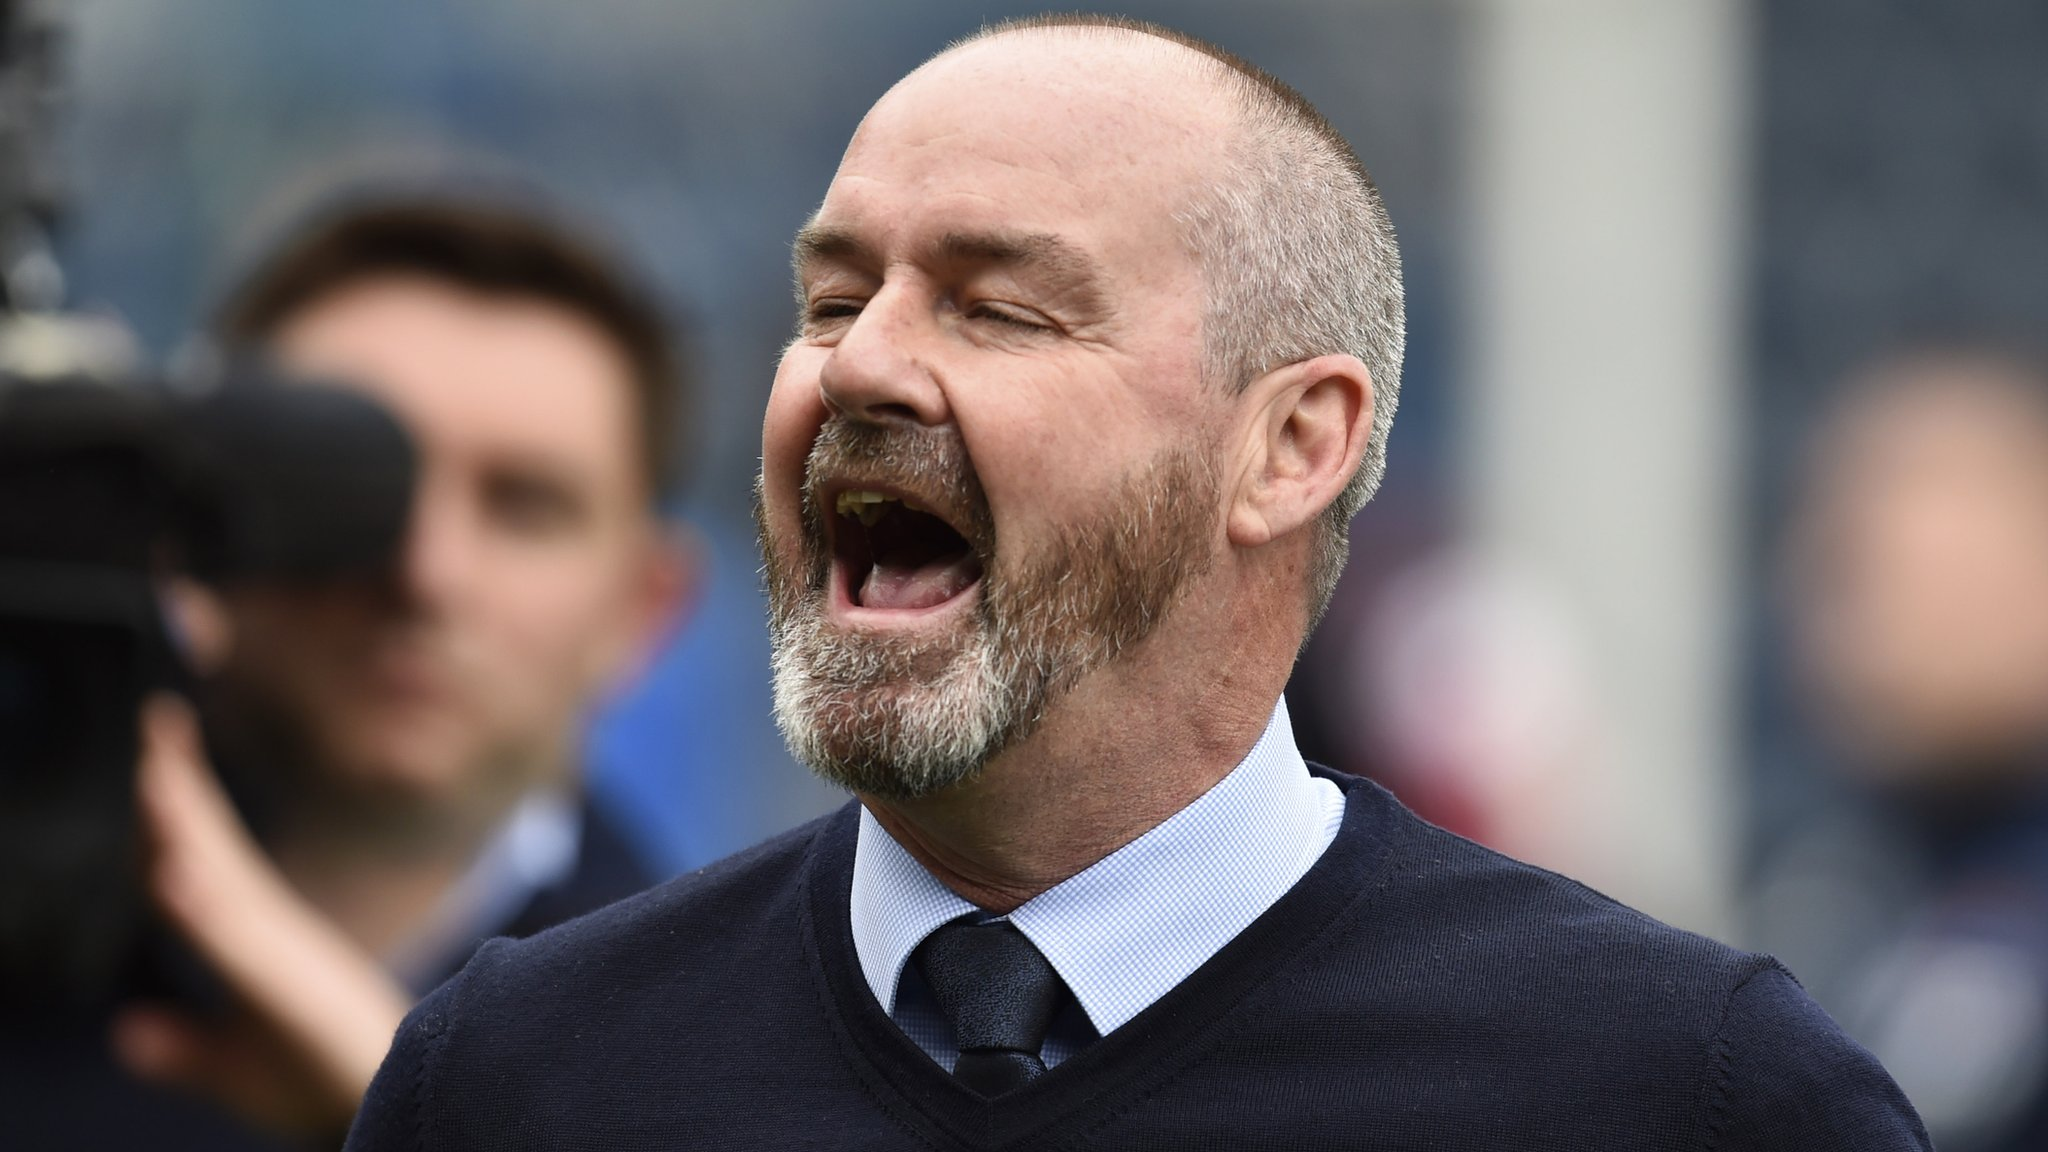 Steve Clarke is named new Scotland manager on three-year deal